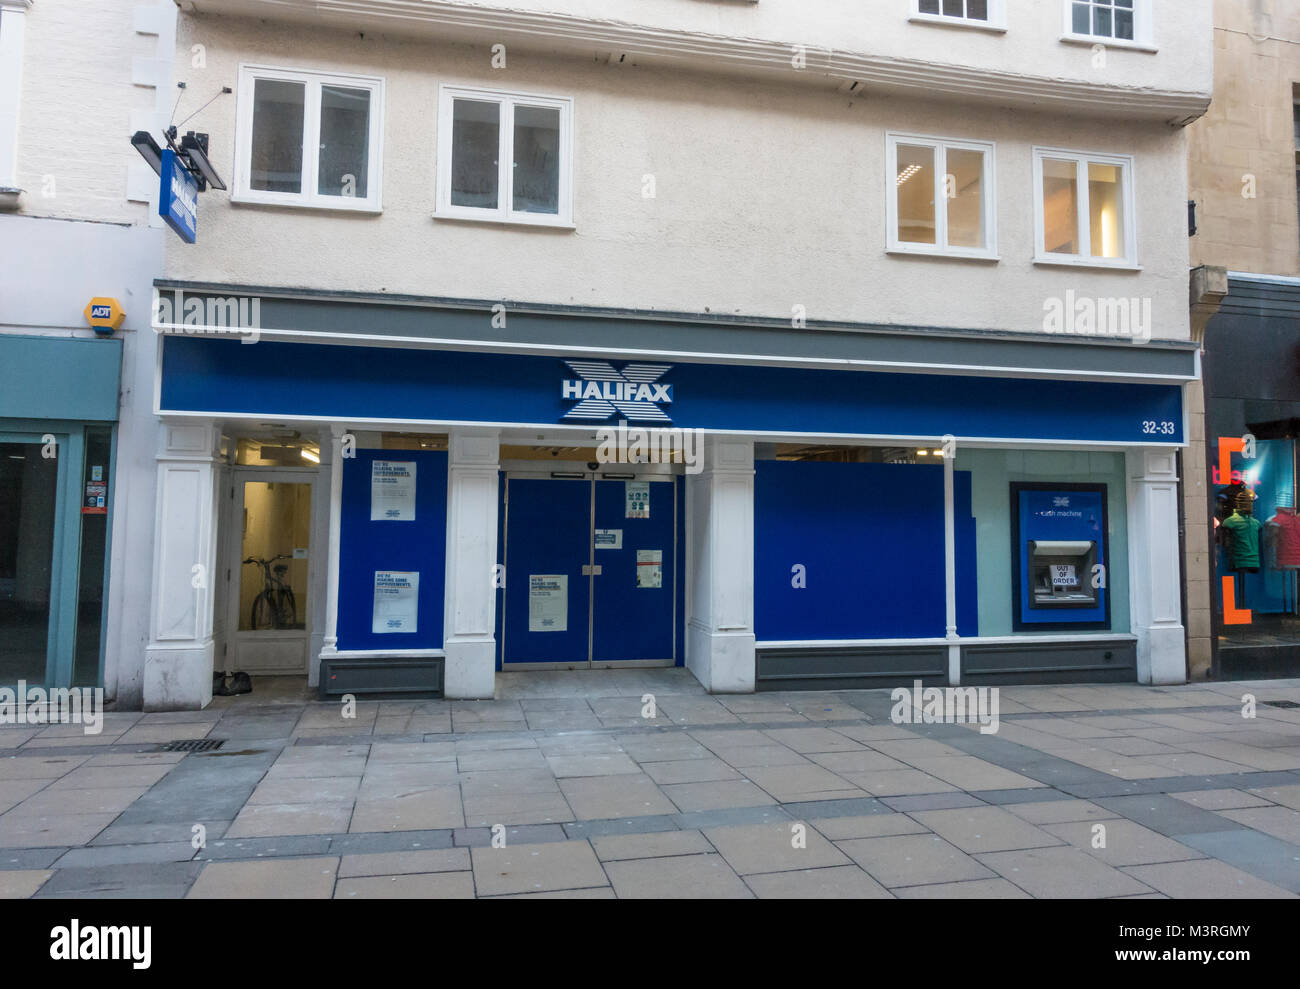 Halifax bank Cambridge office closed for refurbishment 2018 - Stock Image